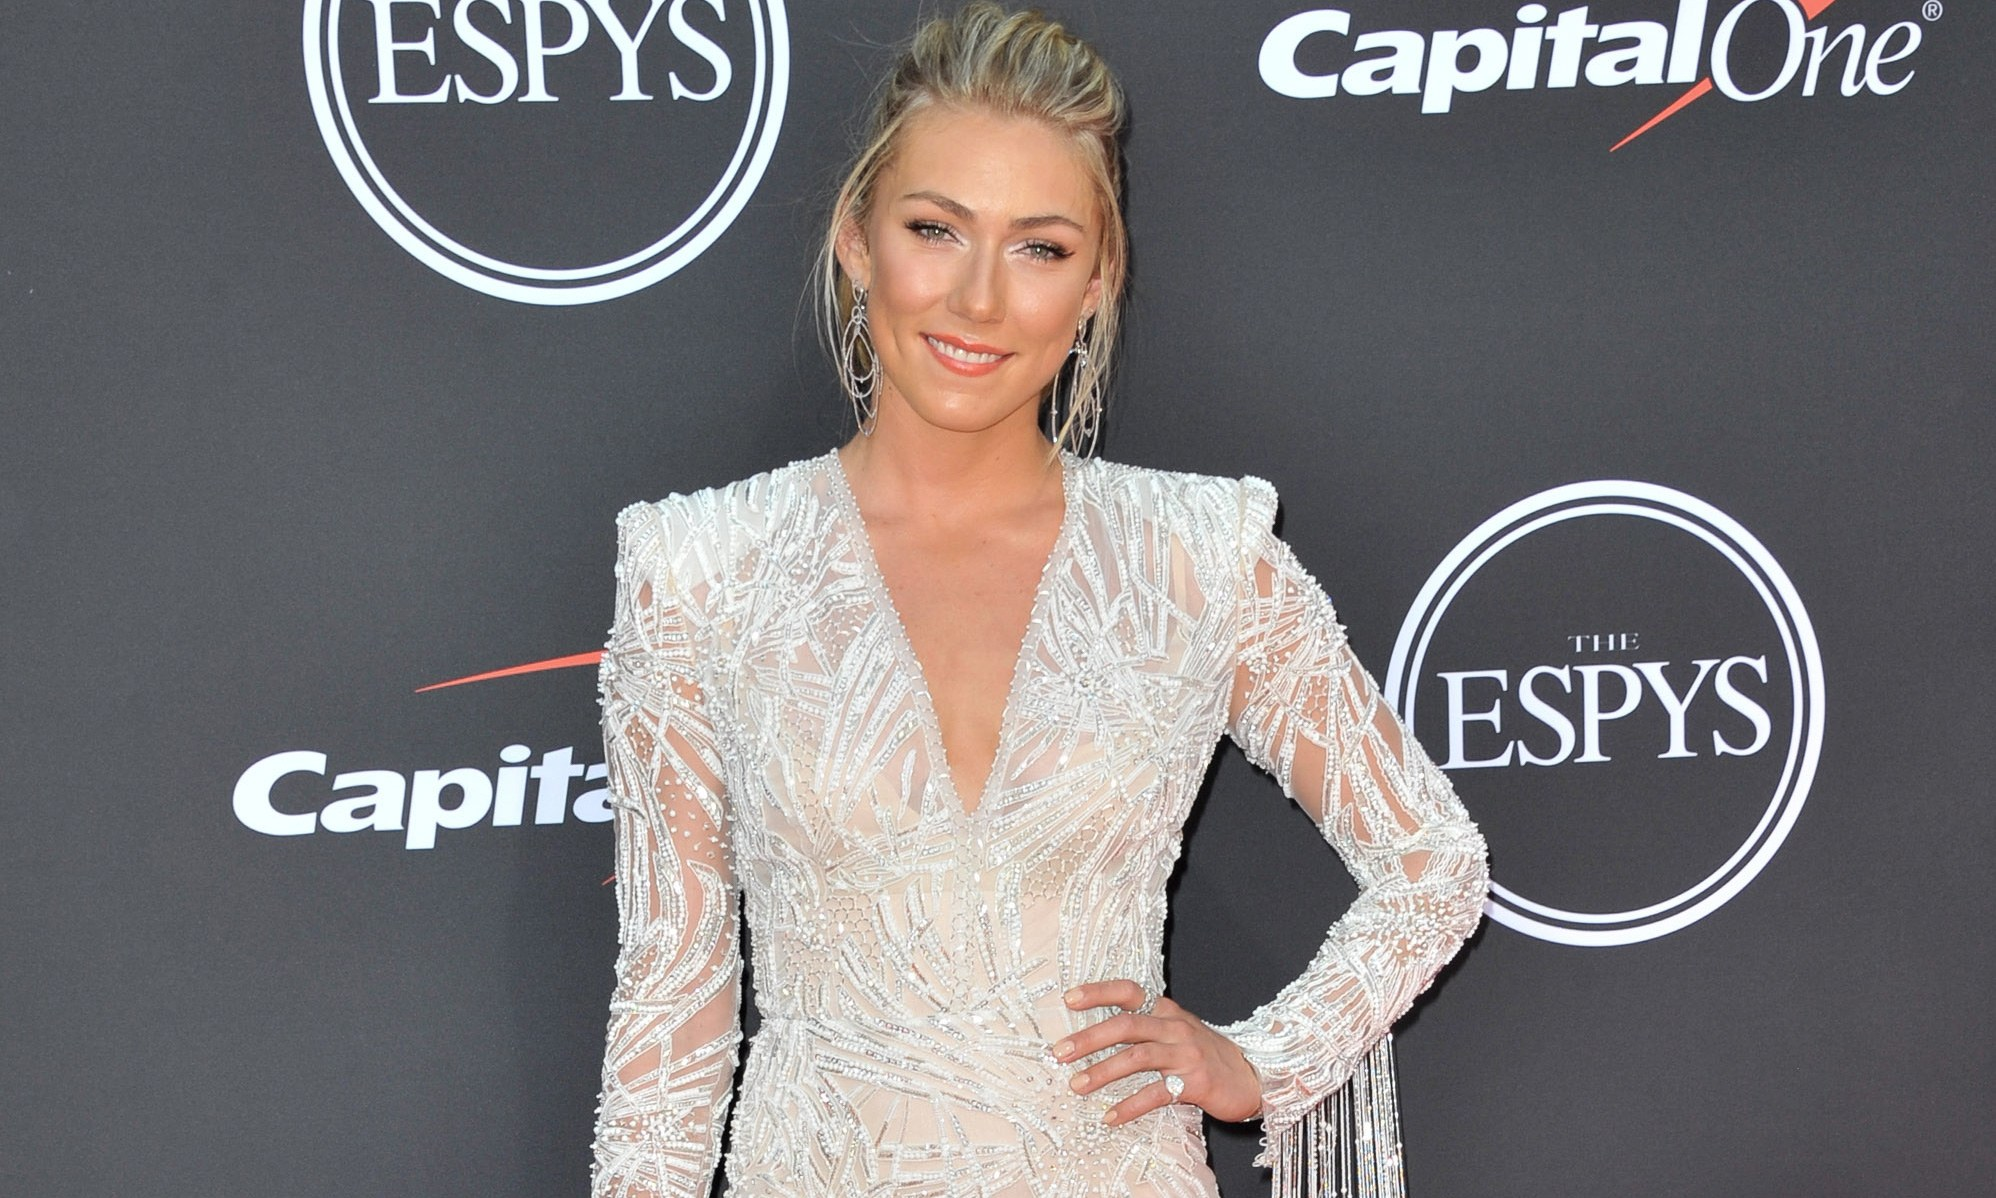 ESPY Awards of 2019: Who-all succeeded in grabbing one??